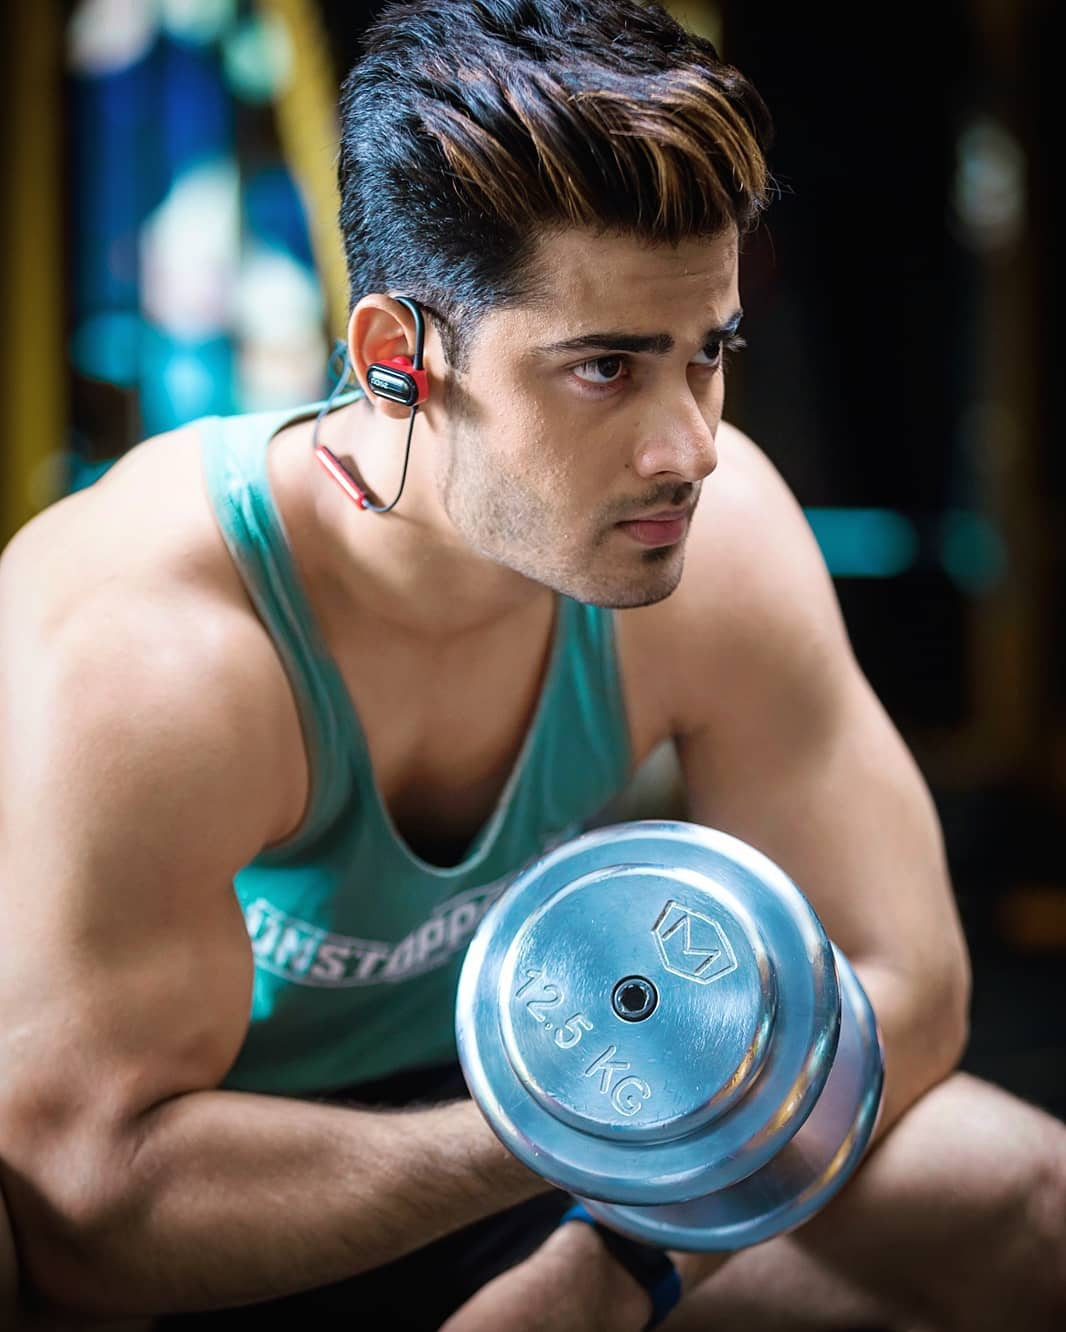 Devoted wear x Deepanshu Narwal - Gym wear & Sports clothing